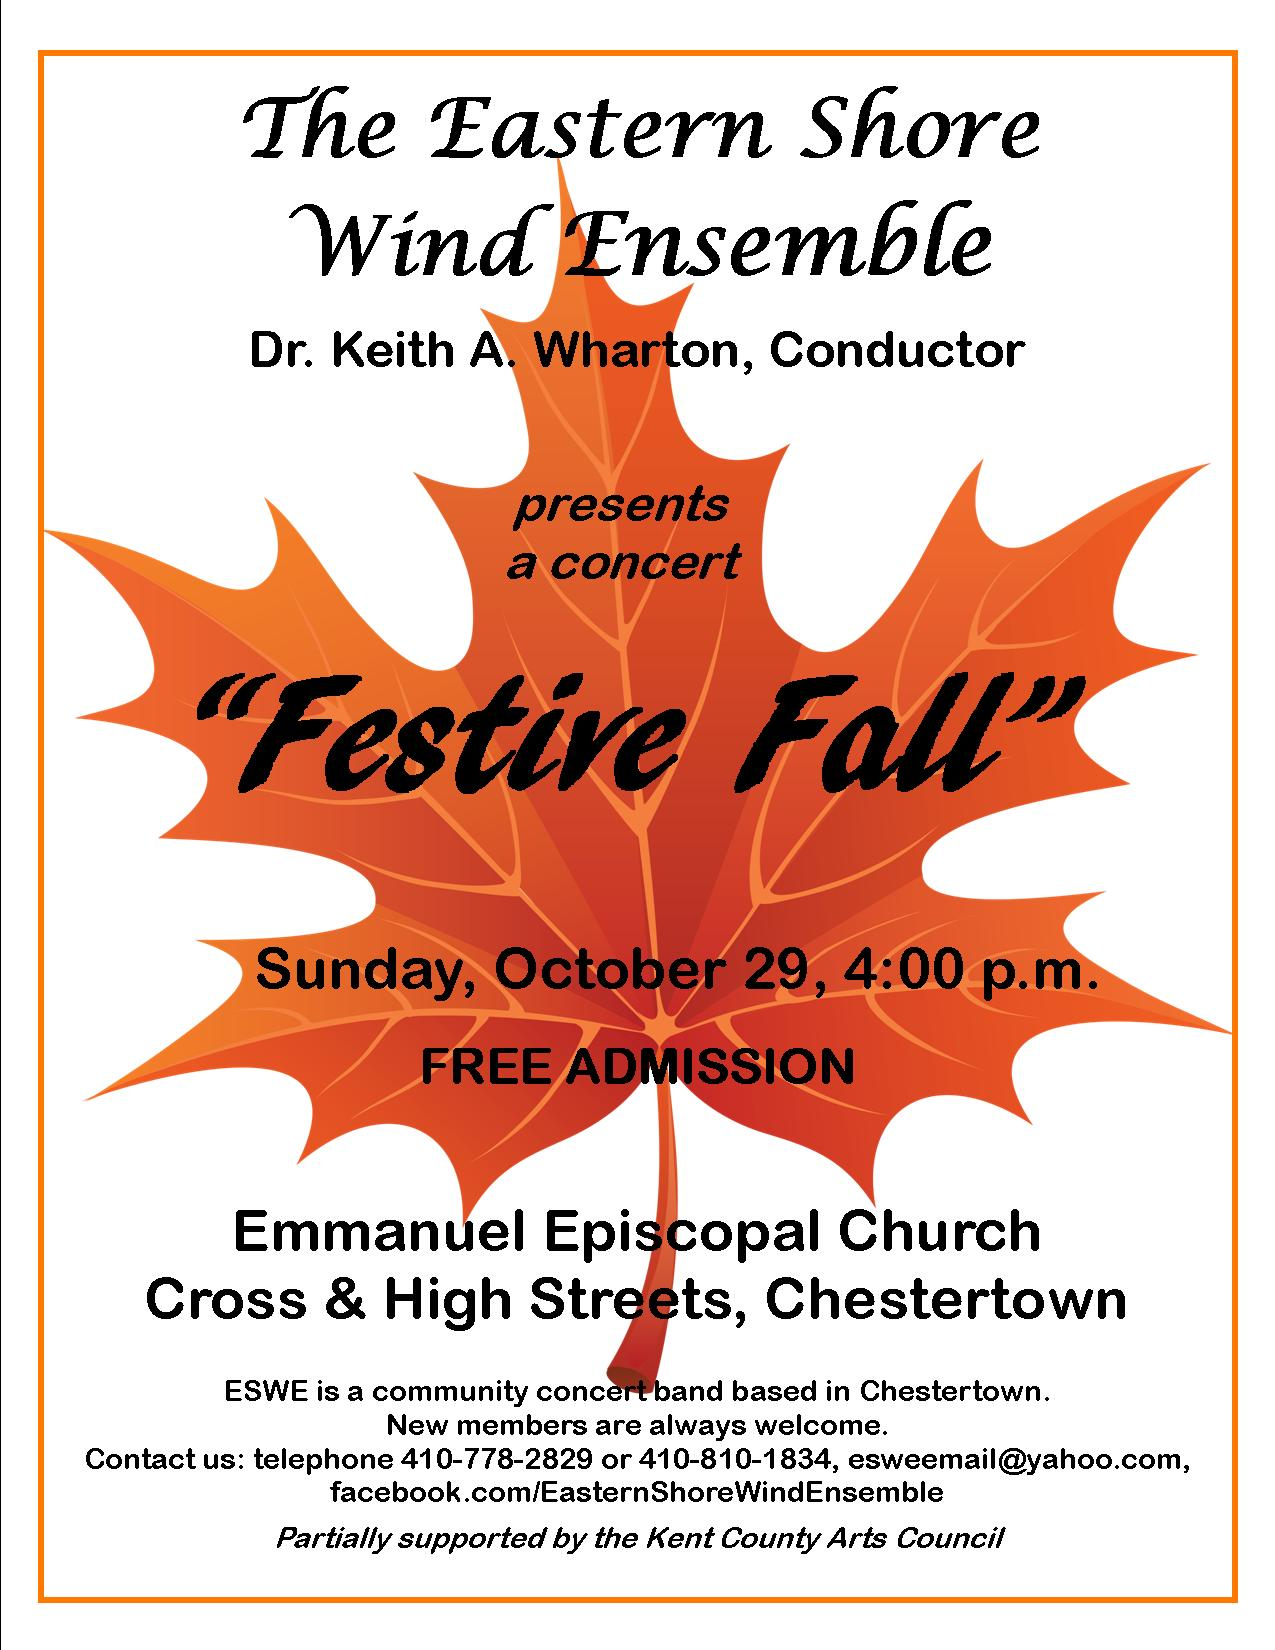 Festive Fall Band Concert by the Eastern Shore Wind Ensemble - Free Admission